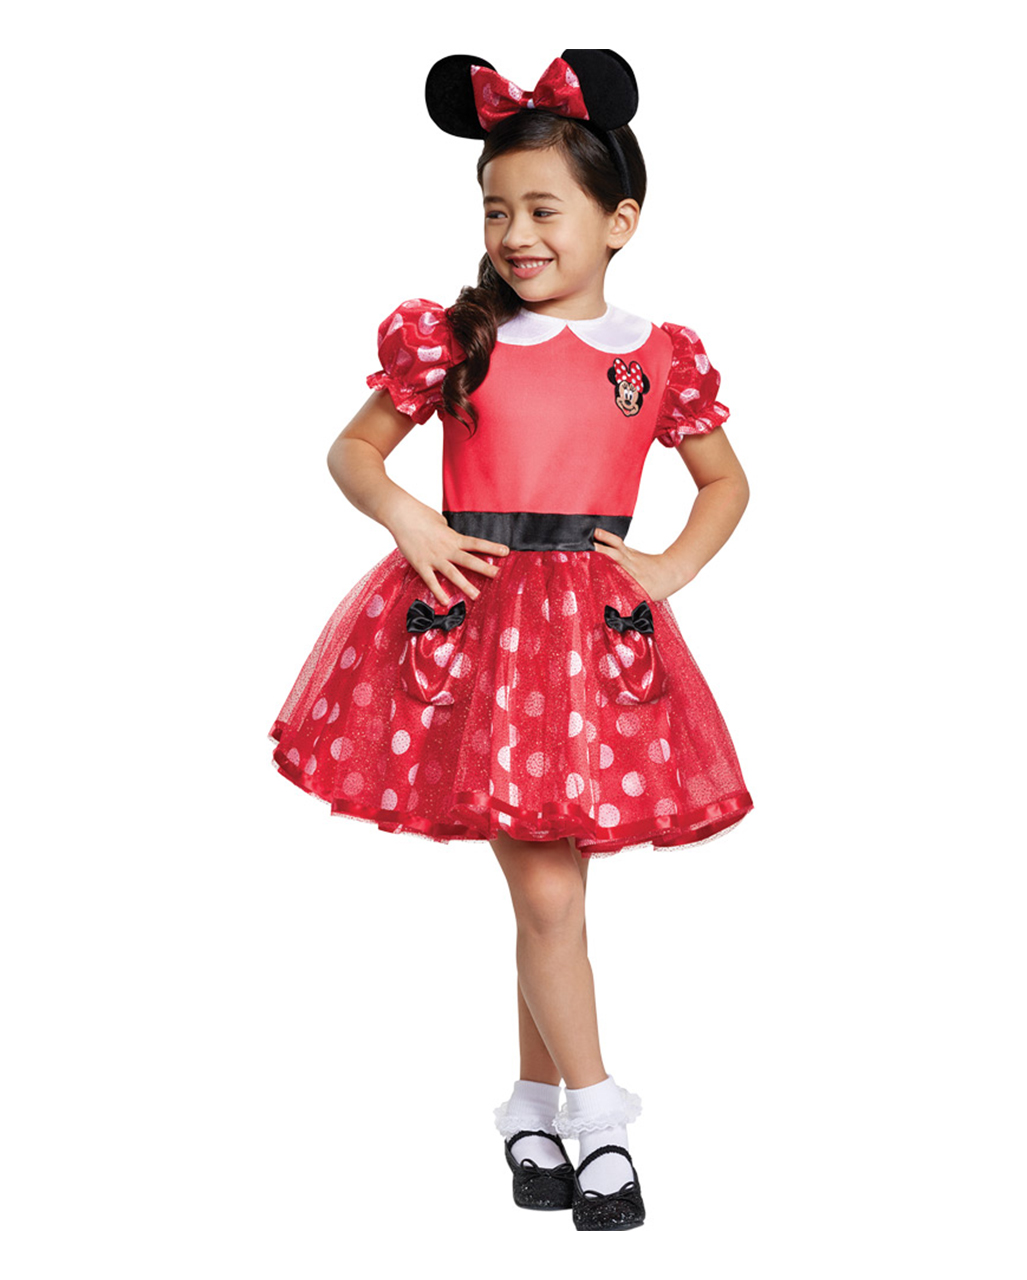 Minnie Mouse Kinder Kostumkleid Rot Fur Fasching Horror Shop Com